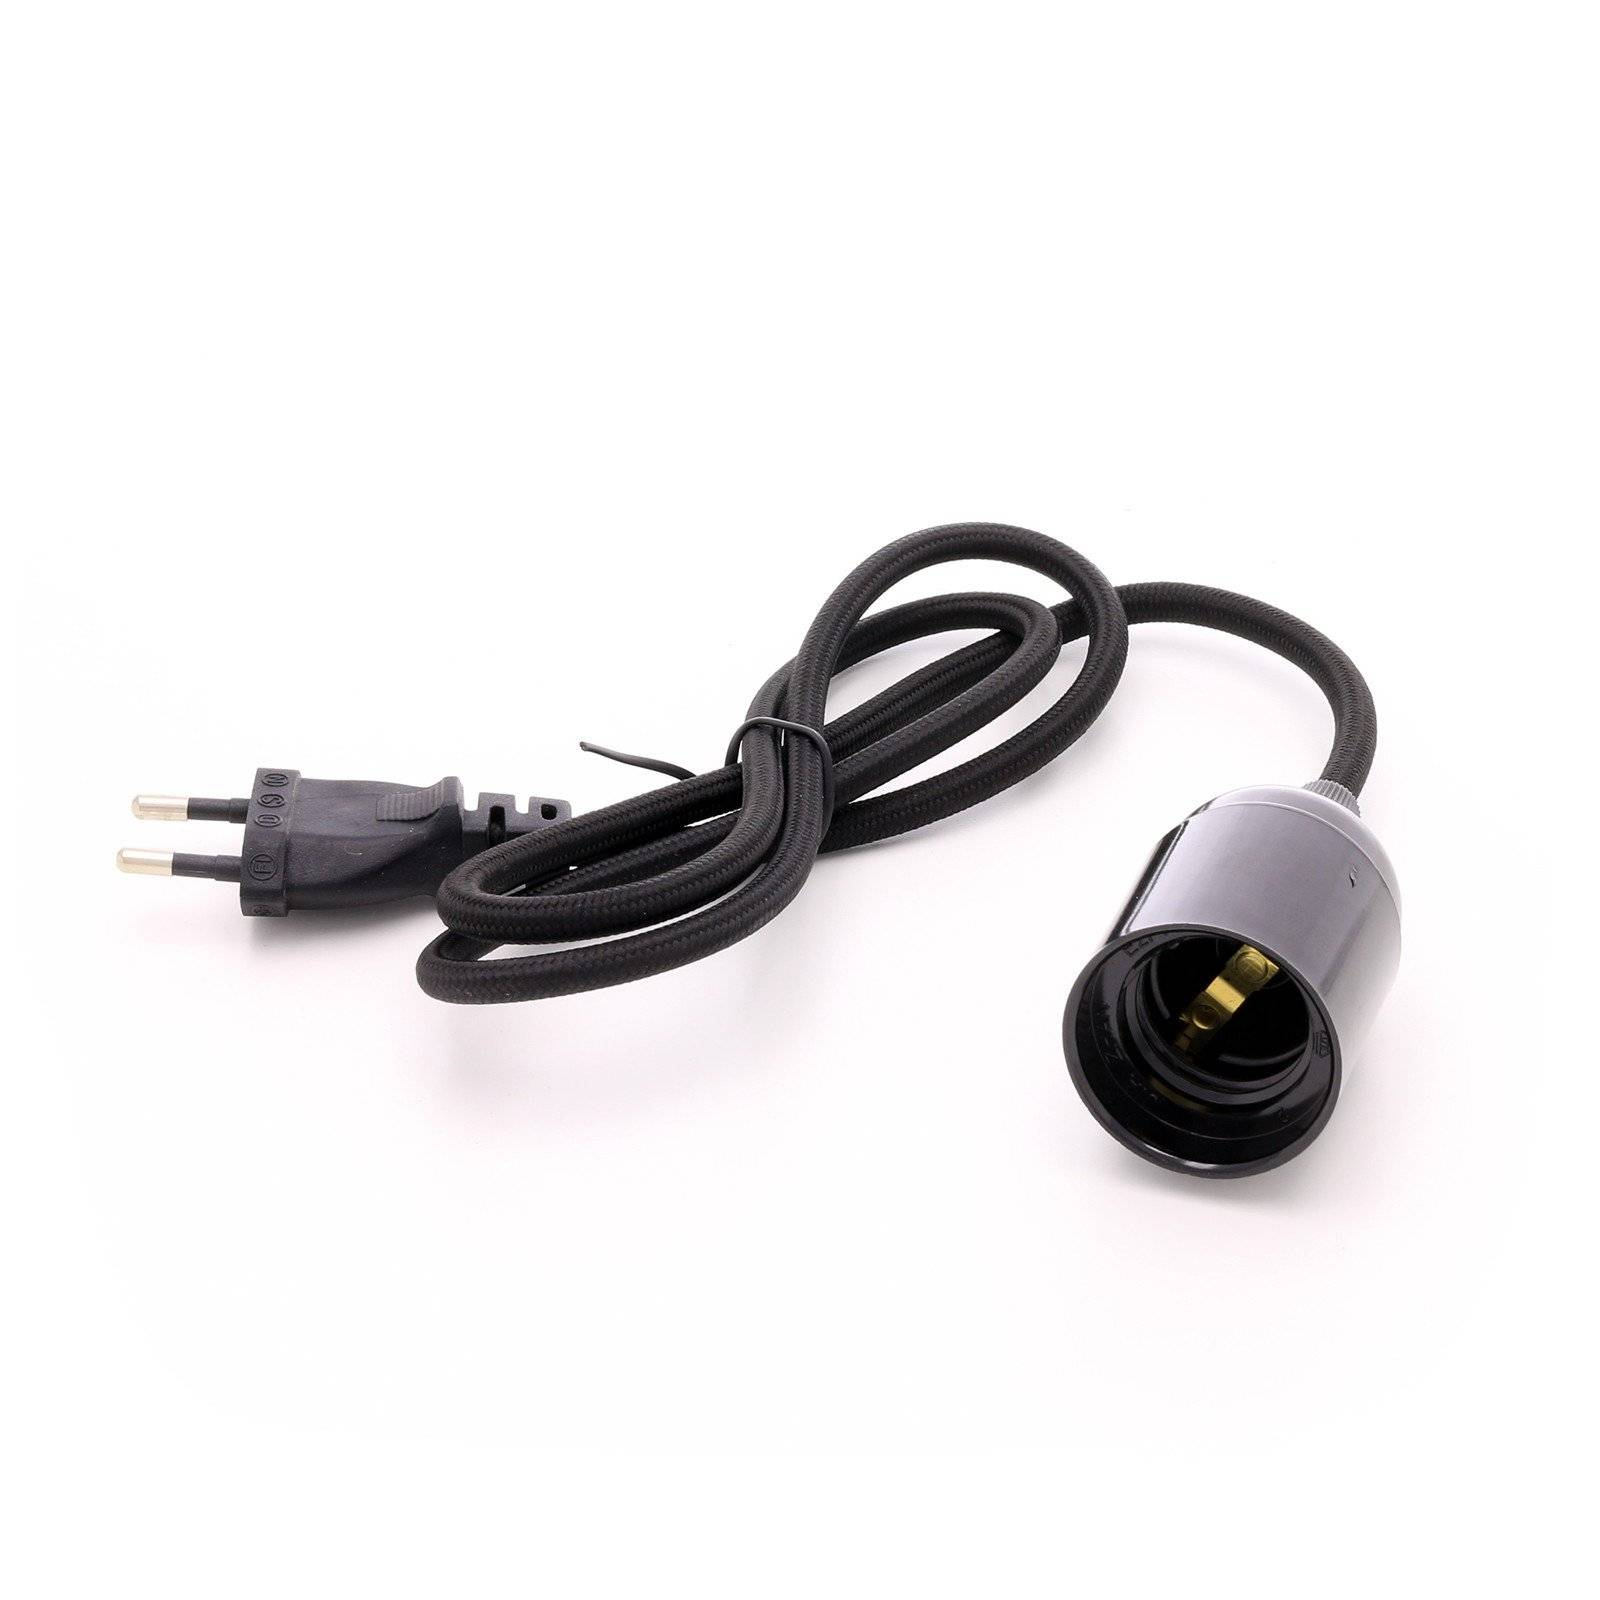 640W Horticultural LED Lamp - Osram & Cree CXB3590 - Flowering Booster - SpectraPANEL X640